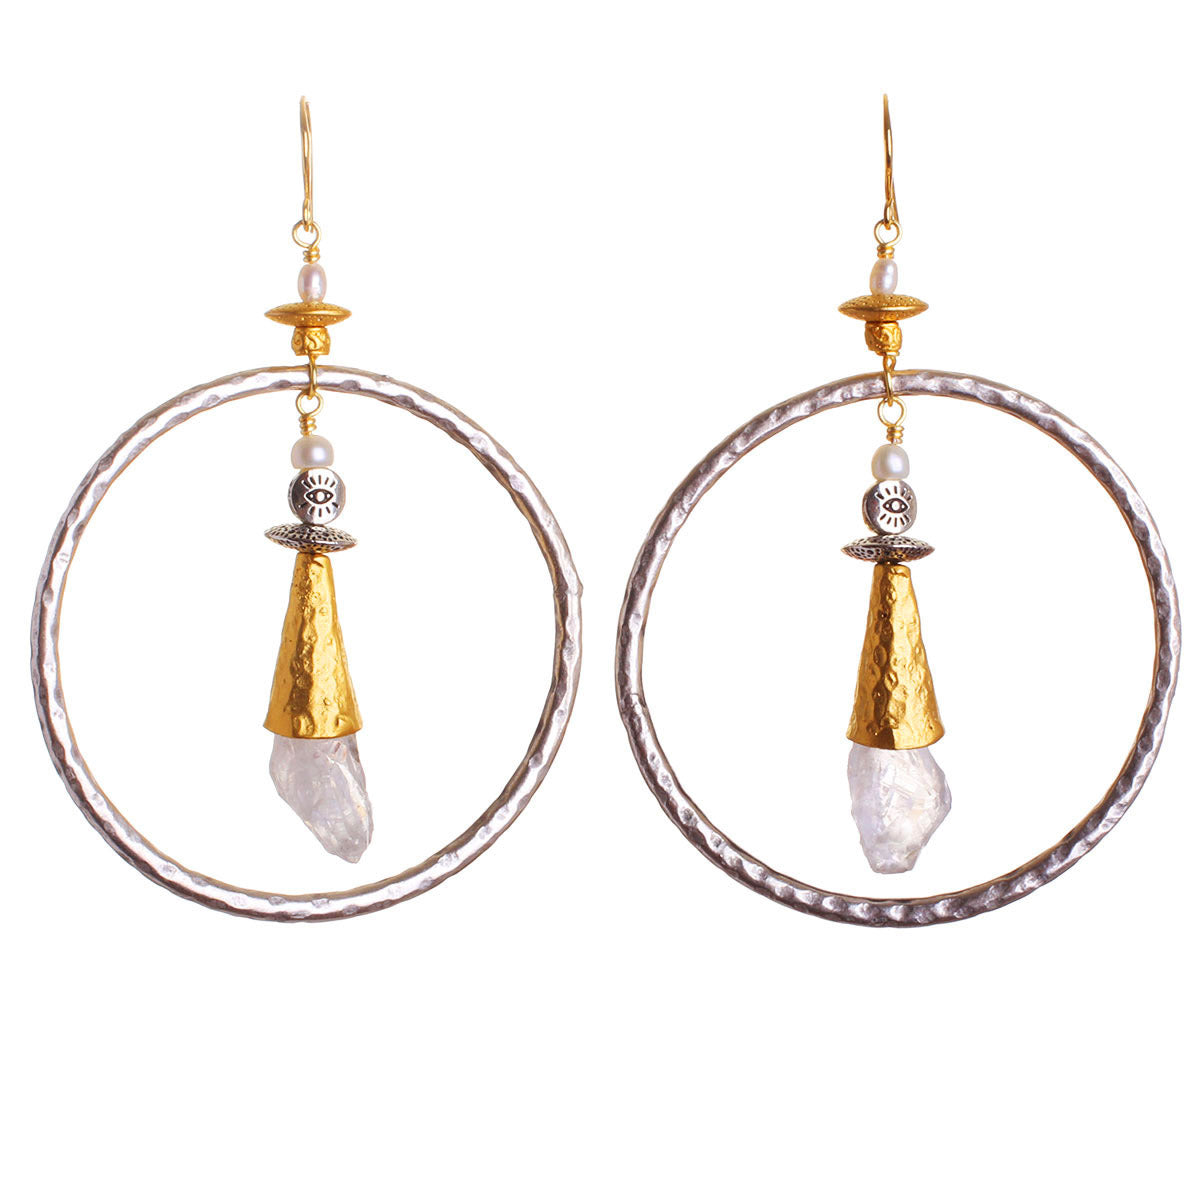 N°536 The Quartz & Pearl Cloud Language of Iris Apfel Statement Earrings